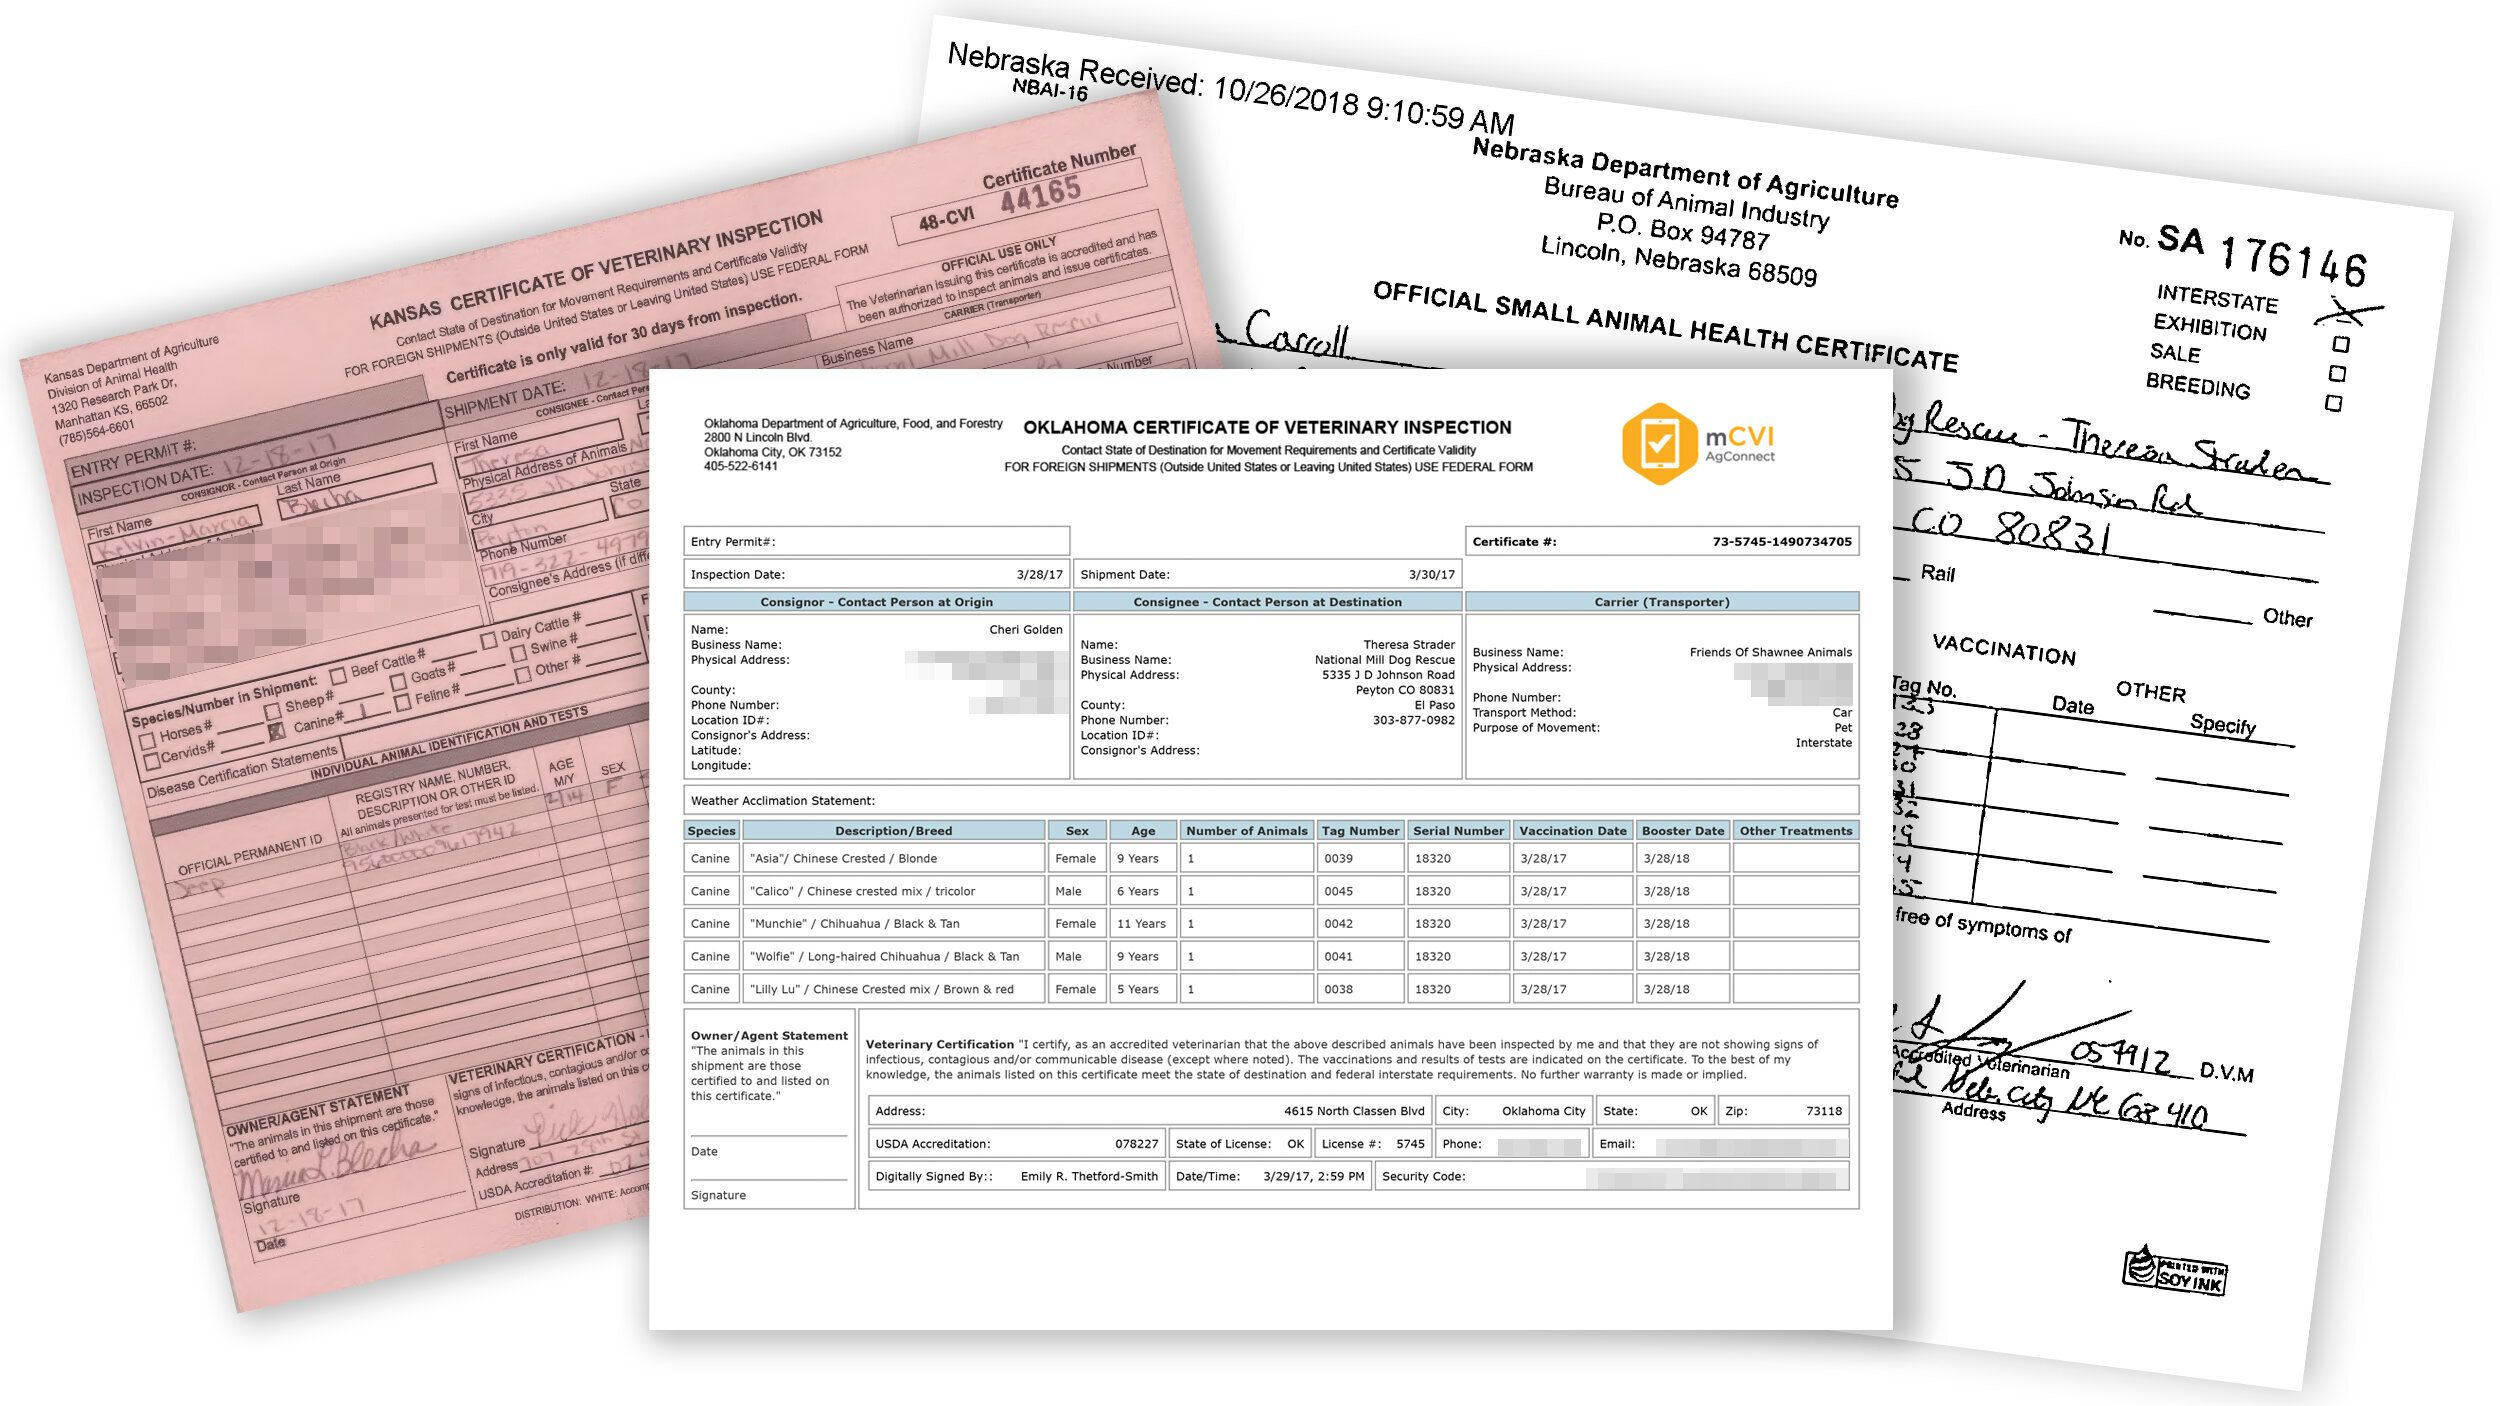 Examples of certificates of veterinary inspection from Kansas, Oklahoma and Nebraska.